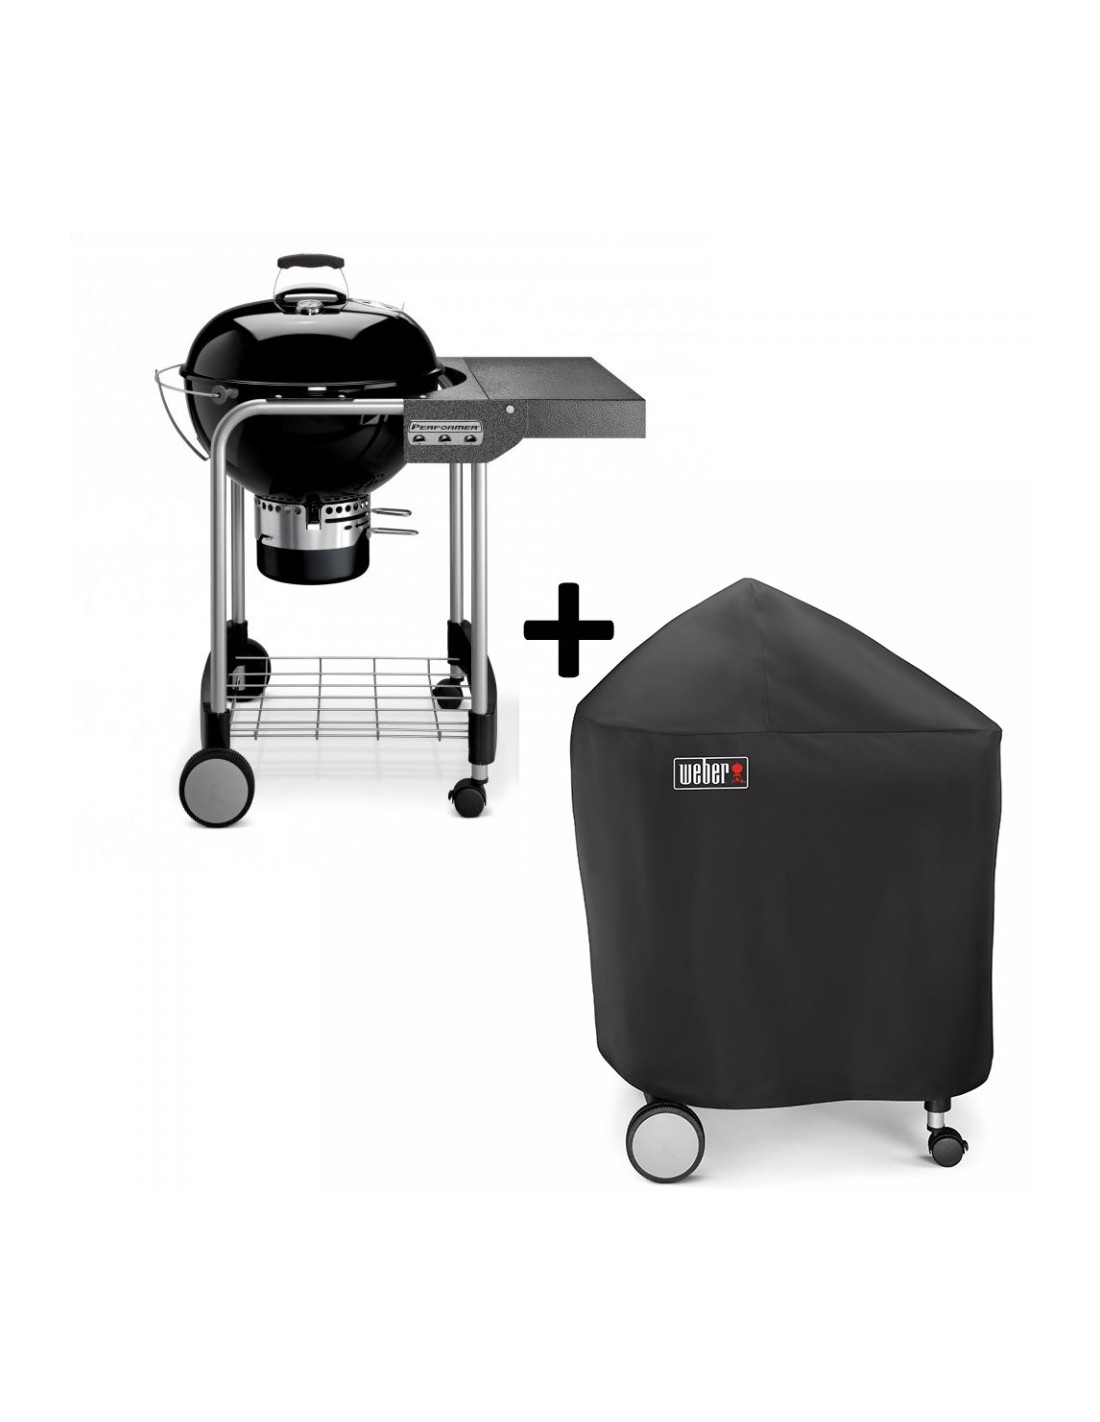 Barbecue weber performer original 57cm gbs housse - Housse barbecue weber ...